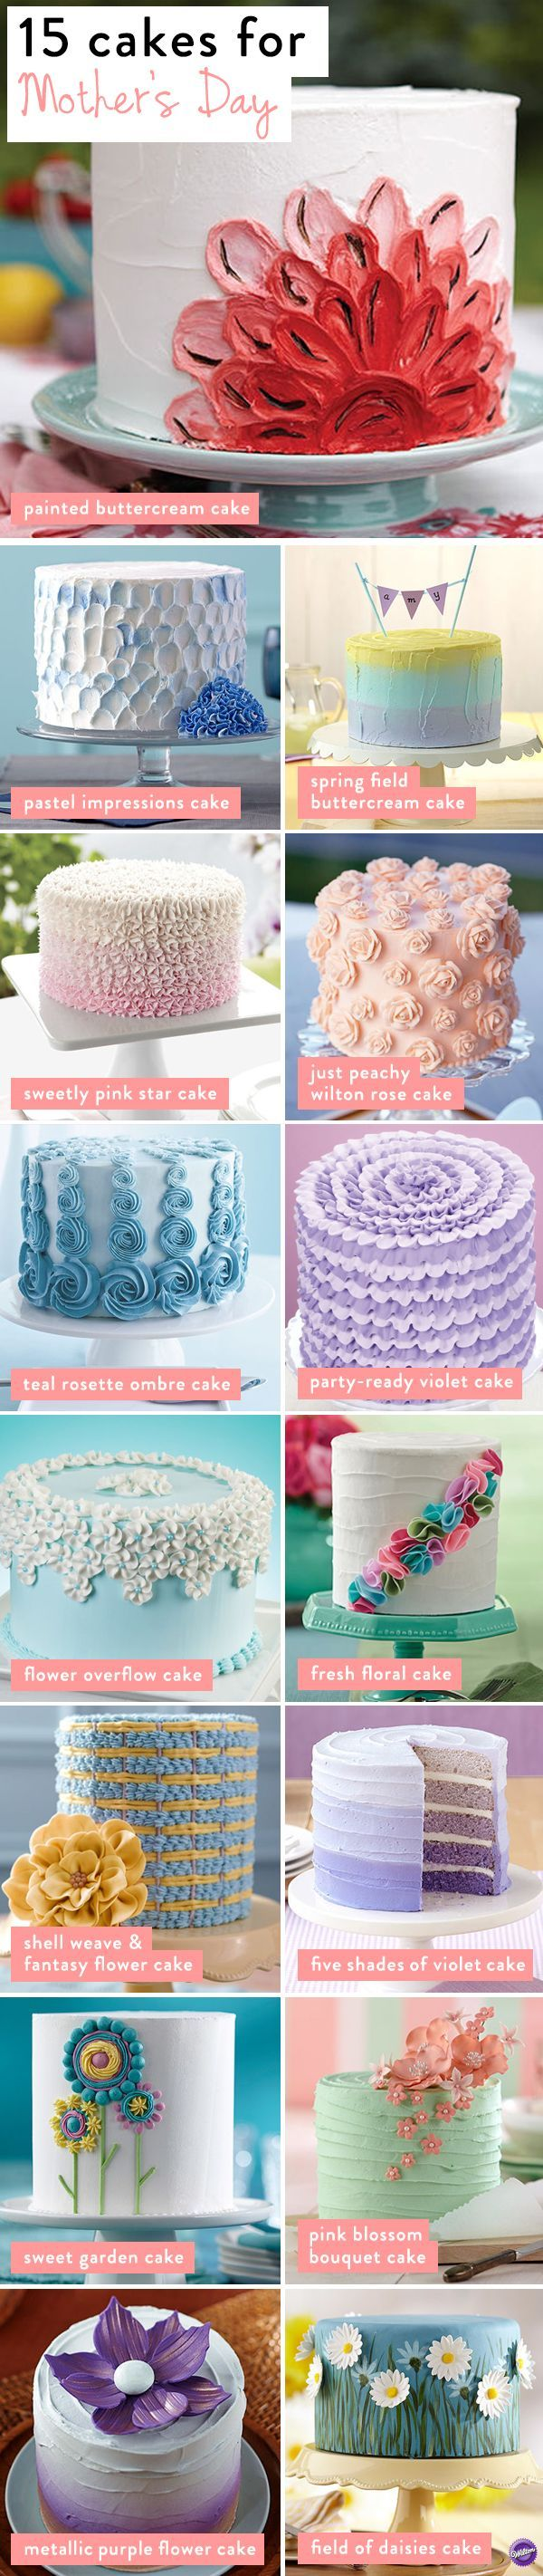 Want to make something sweet for mom this Mother's Day? Here are 15 cake projects that you can make with love for mom. Bonus: many of these cake designs work for birthdays, bridal or baby showers or other celebrations!: